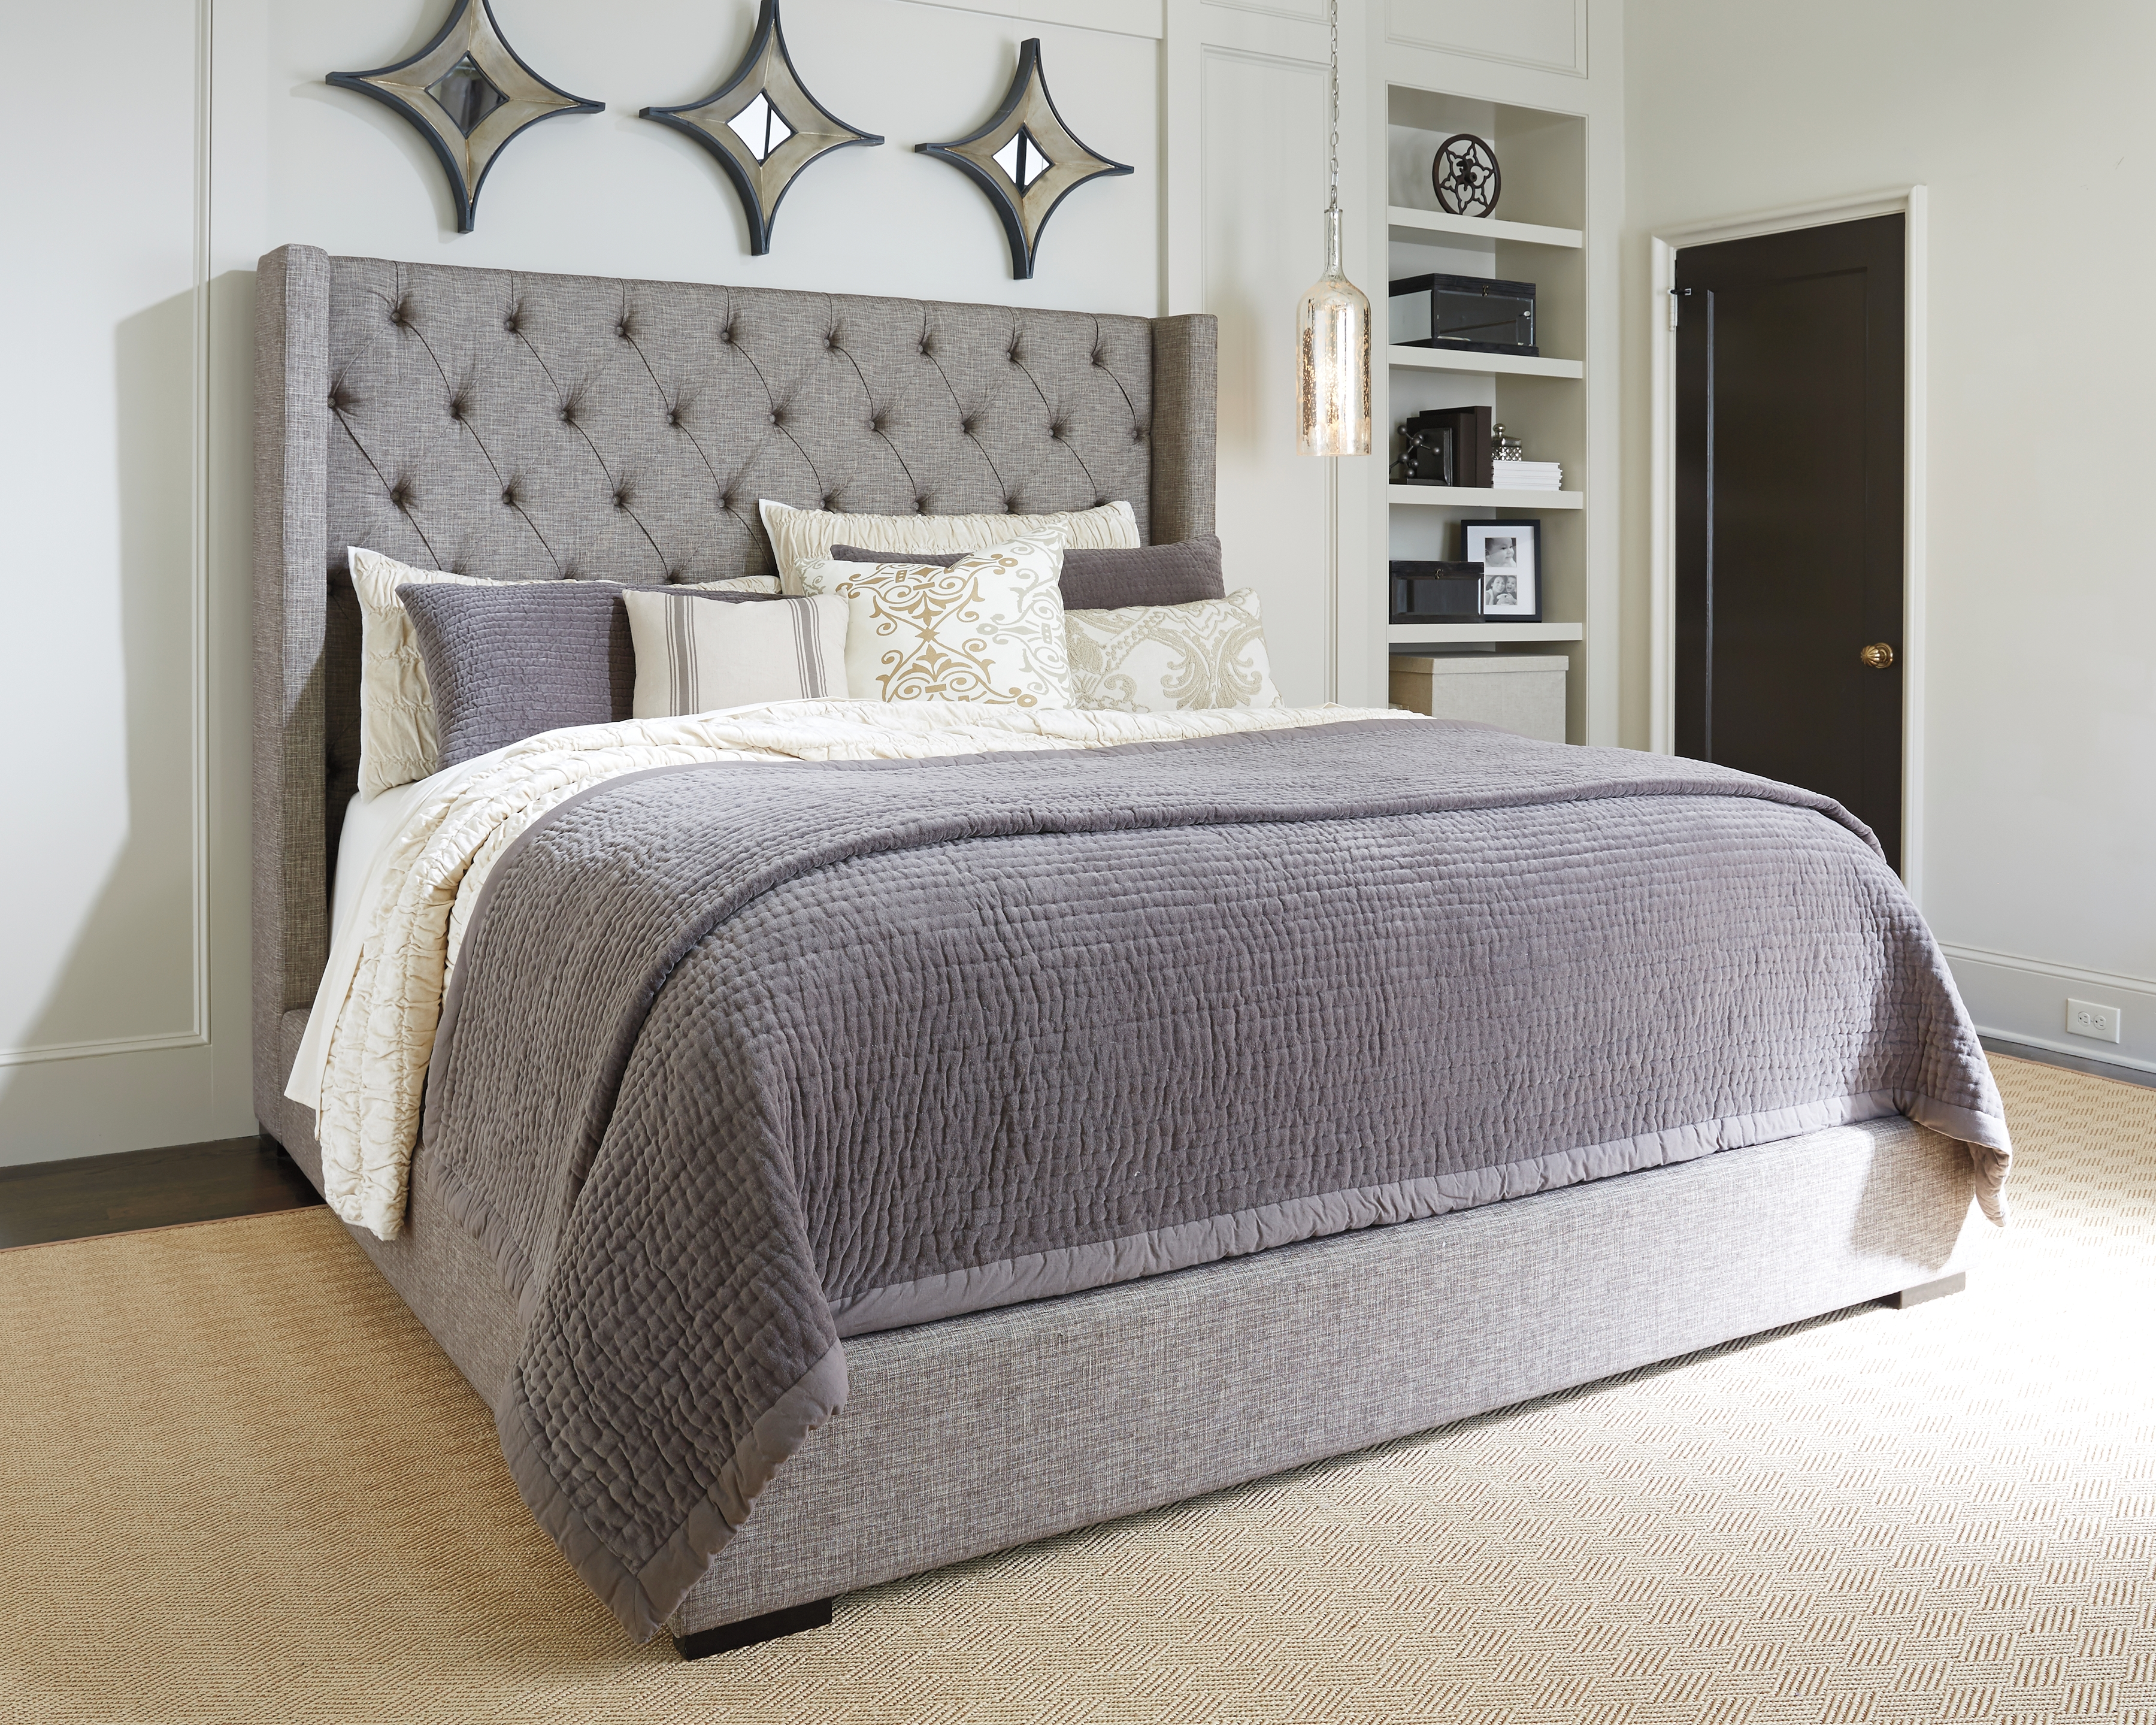 Sorinella King Upholstered Bed With Storage Nis754773627 Ashley Homestore